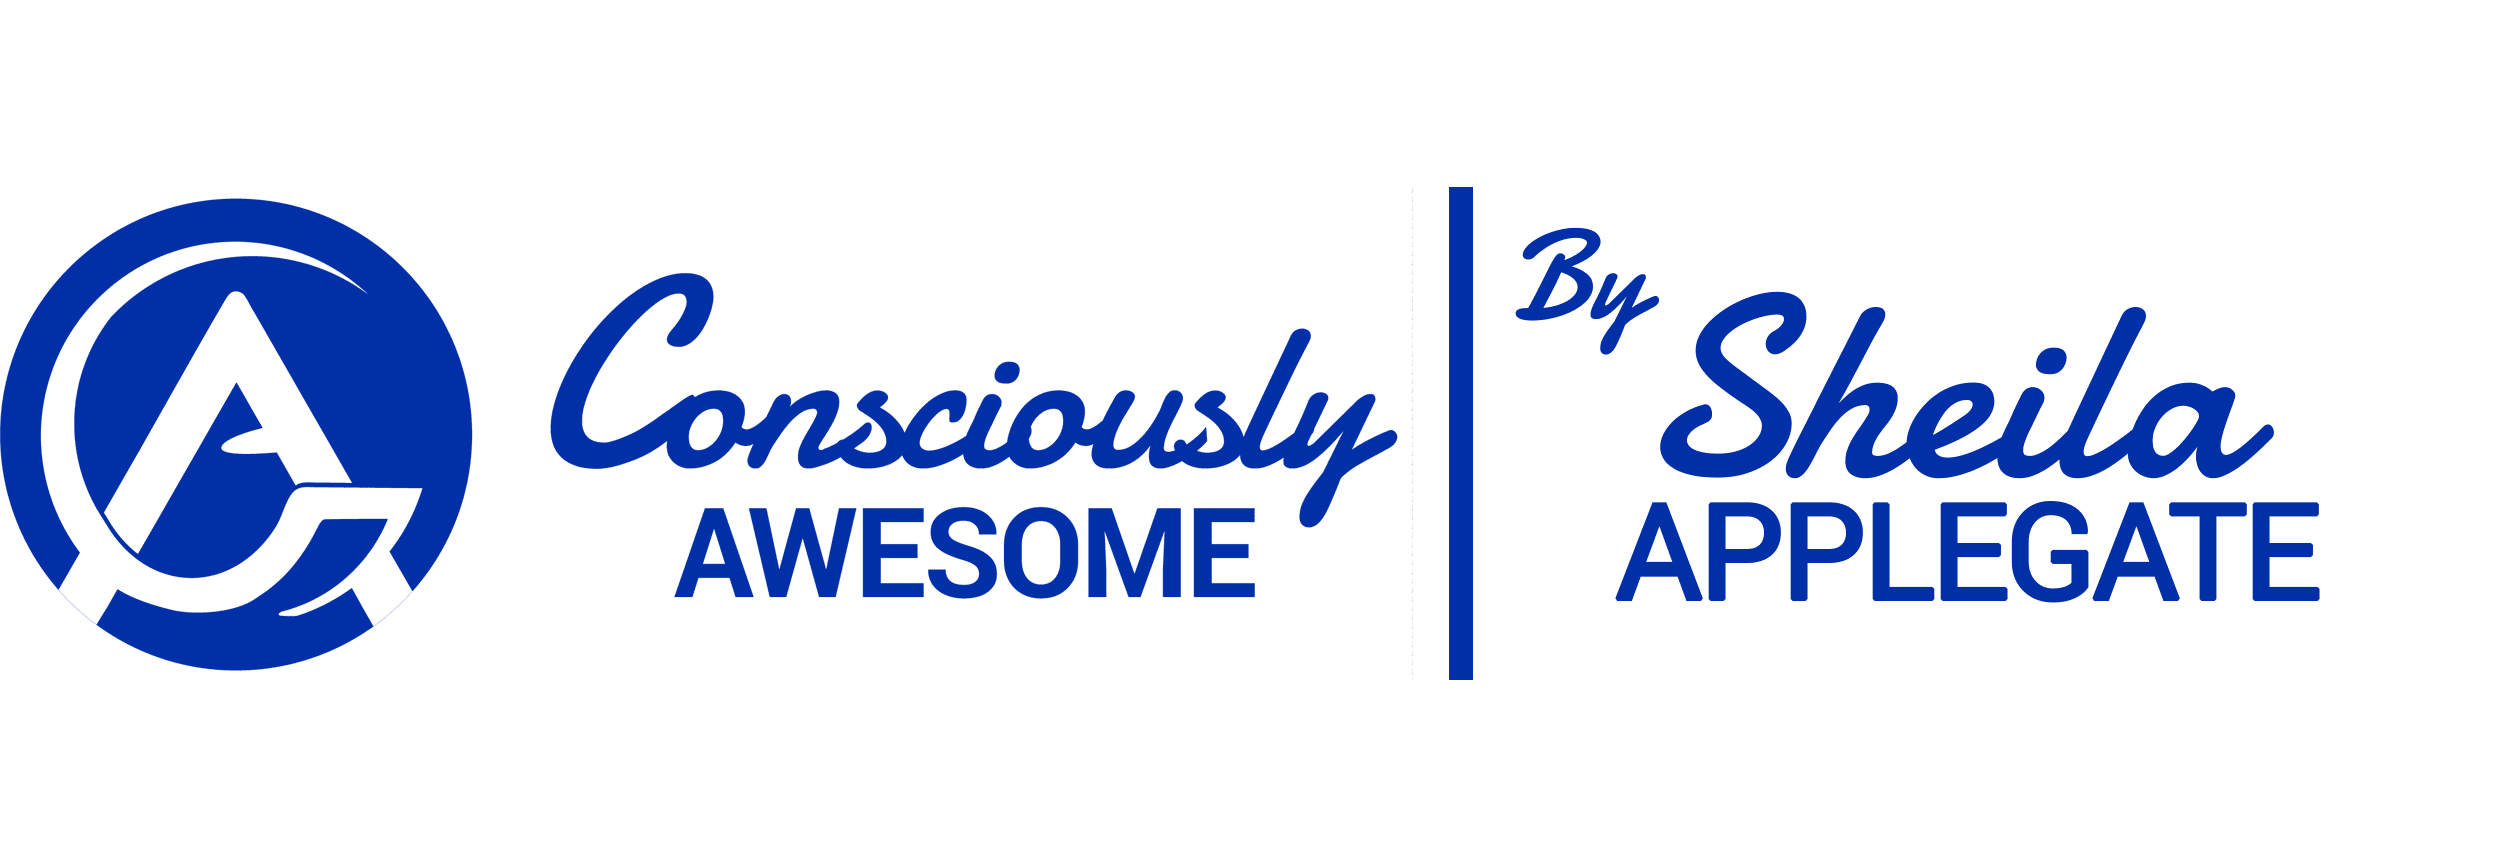 Consciously Awesome by Sheila Applegate